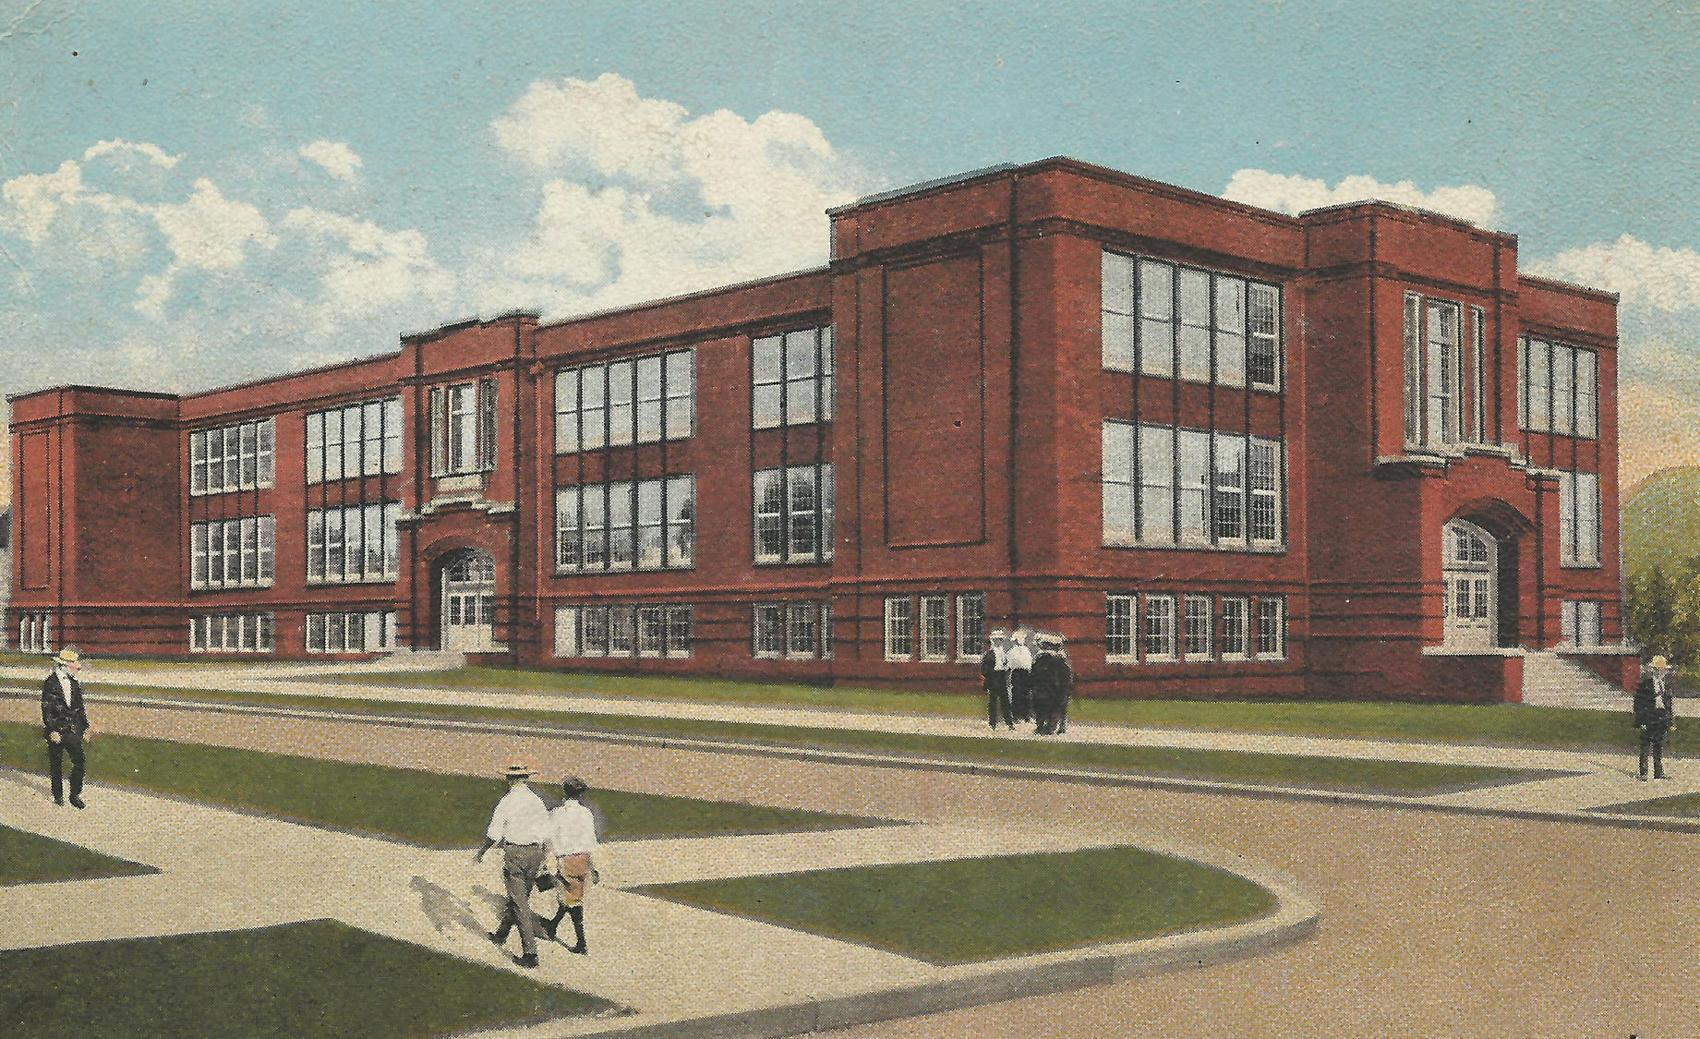 Postcard of Enslow Middle School